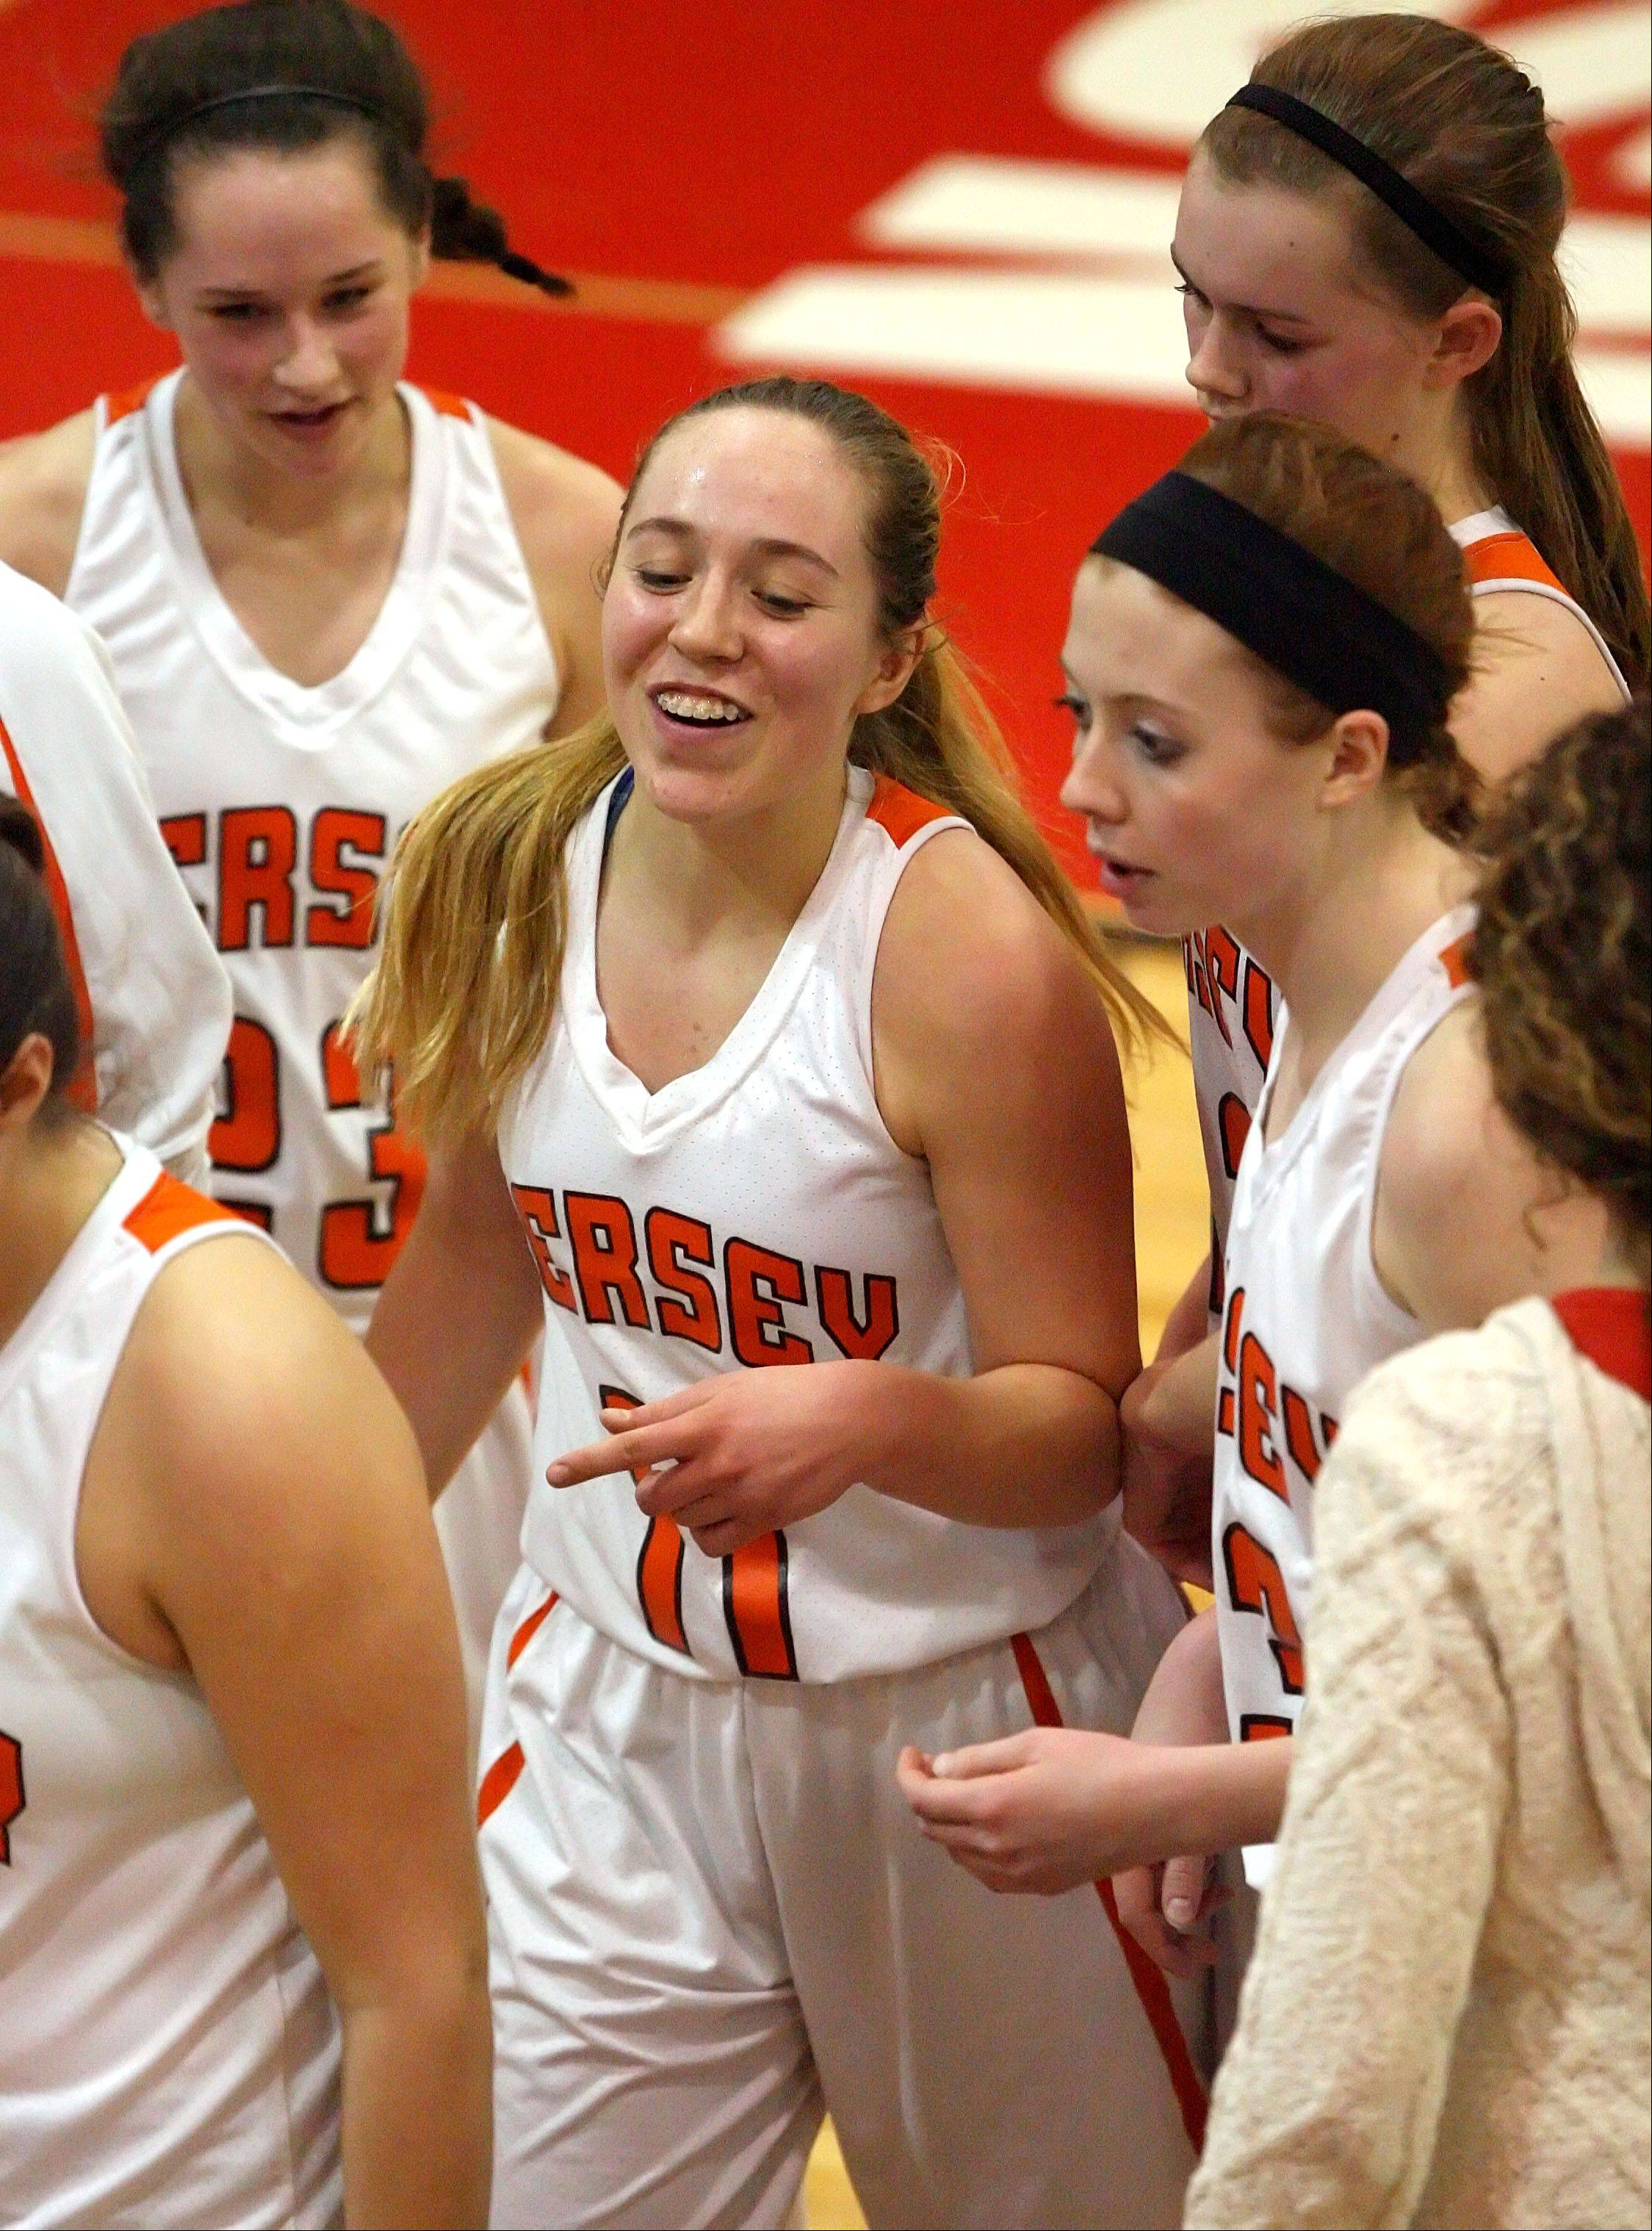 Hersey's Morgan Harris is all smiles as she comes back to the bench during Class 4A regional semifinal play Tuesday night at Mundelein.